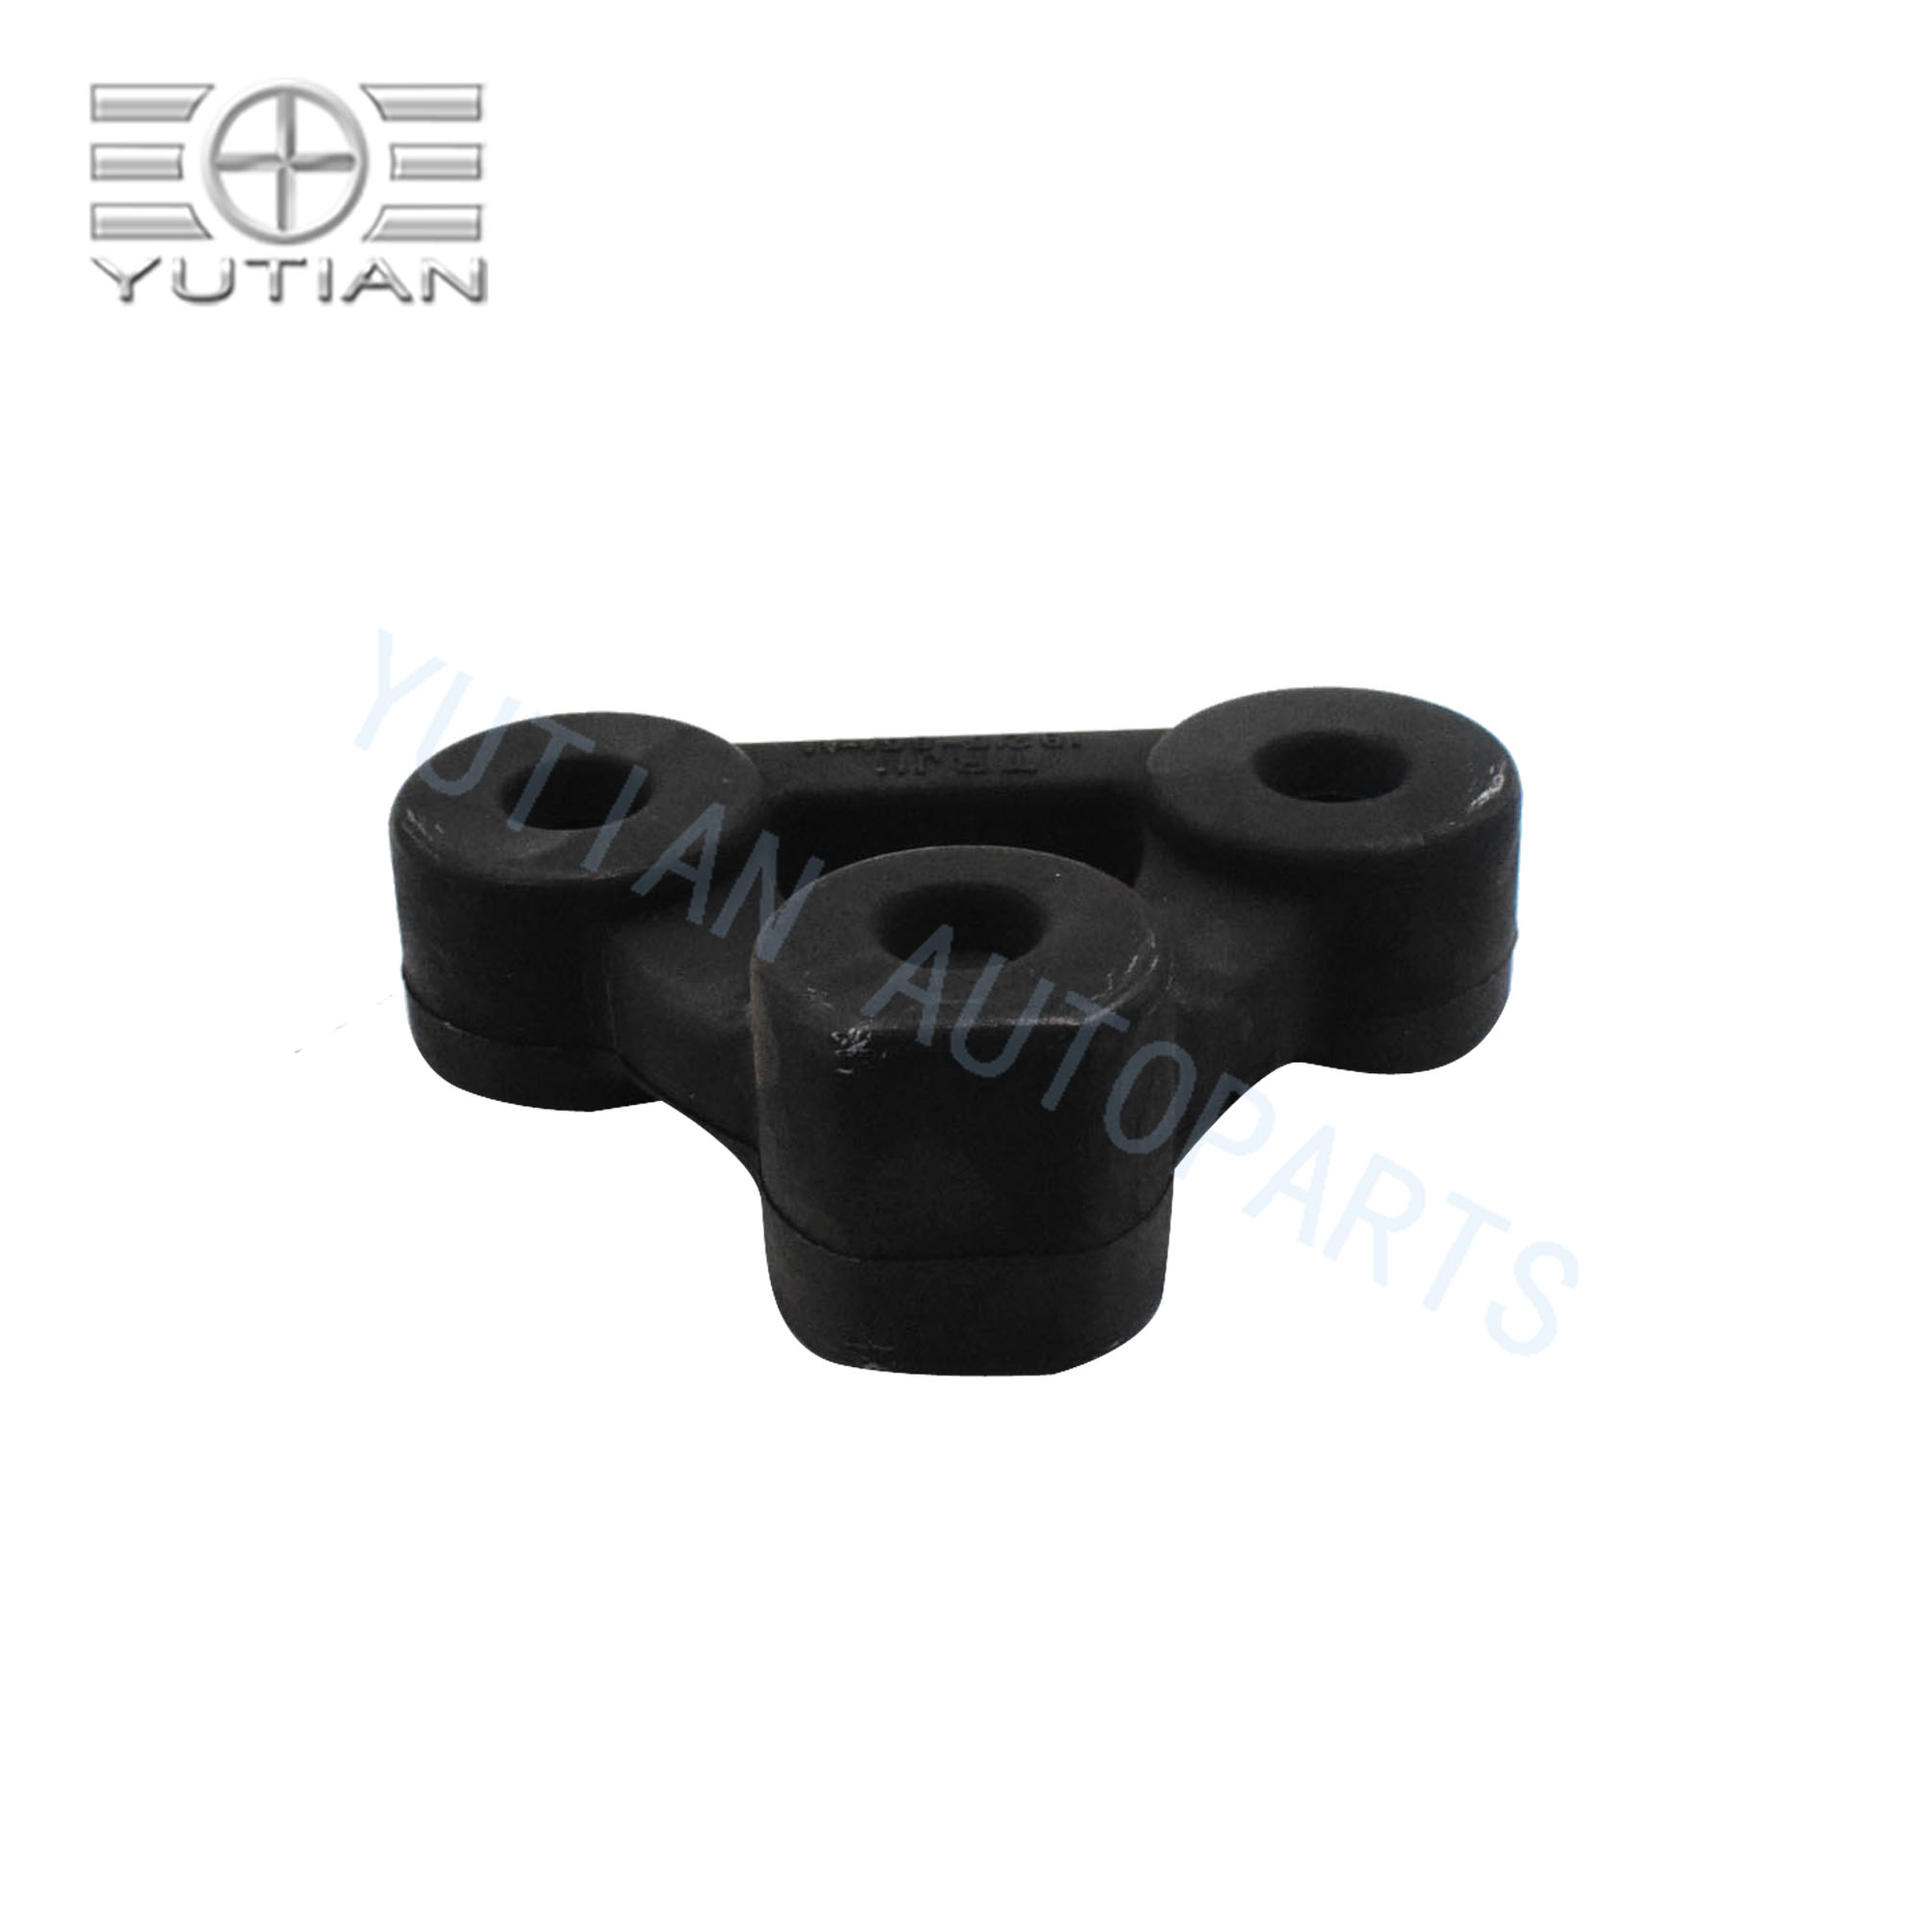 BLACK RUBBER, EX. MOUNTING Exhaust Rubber FIT FOR HONDA FIT CITY CRV CIVIC OEM 18215-S5A-A11